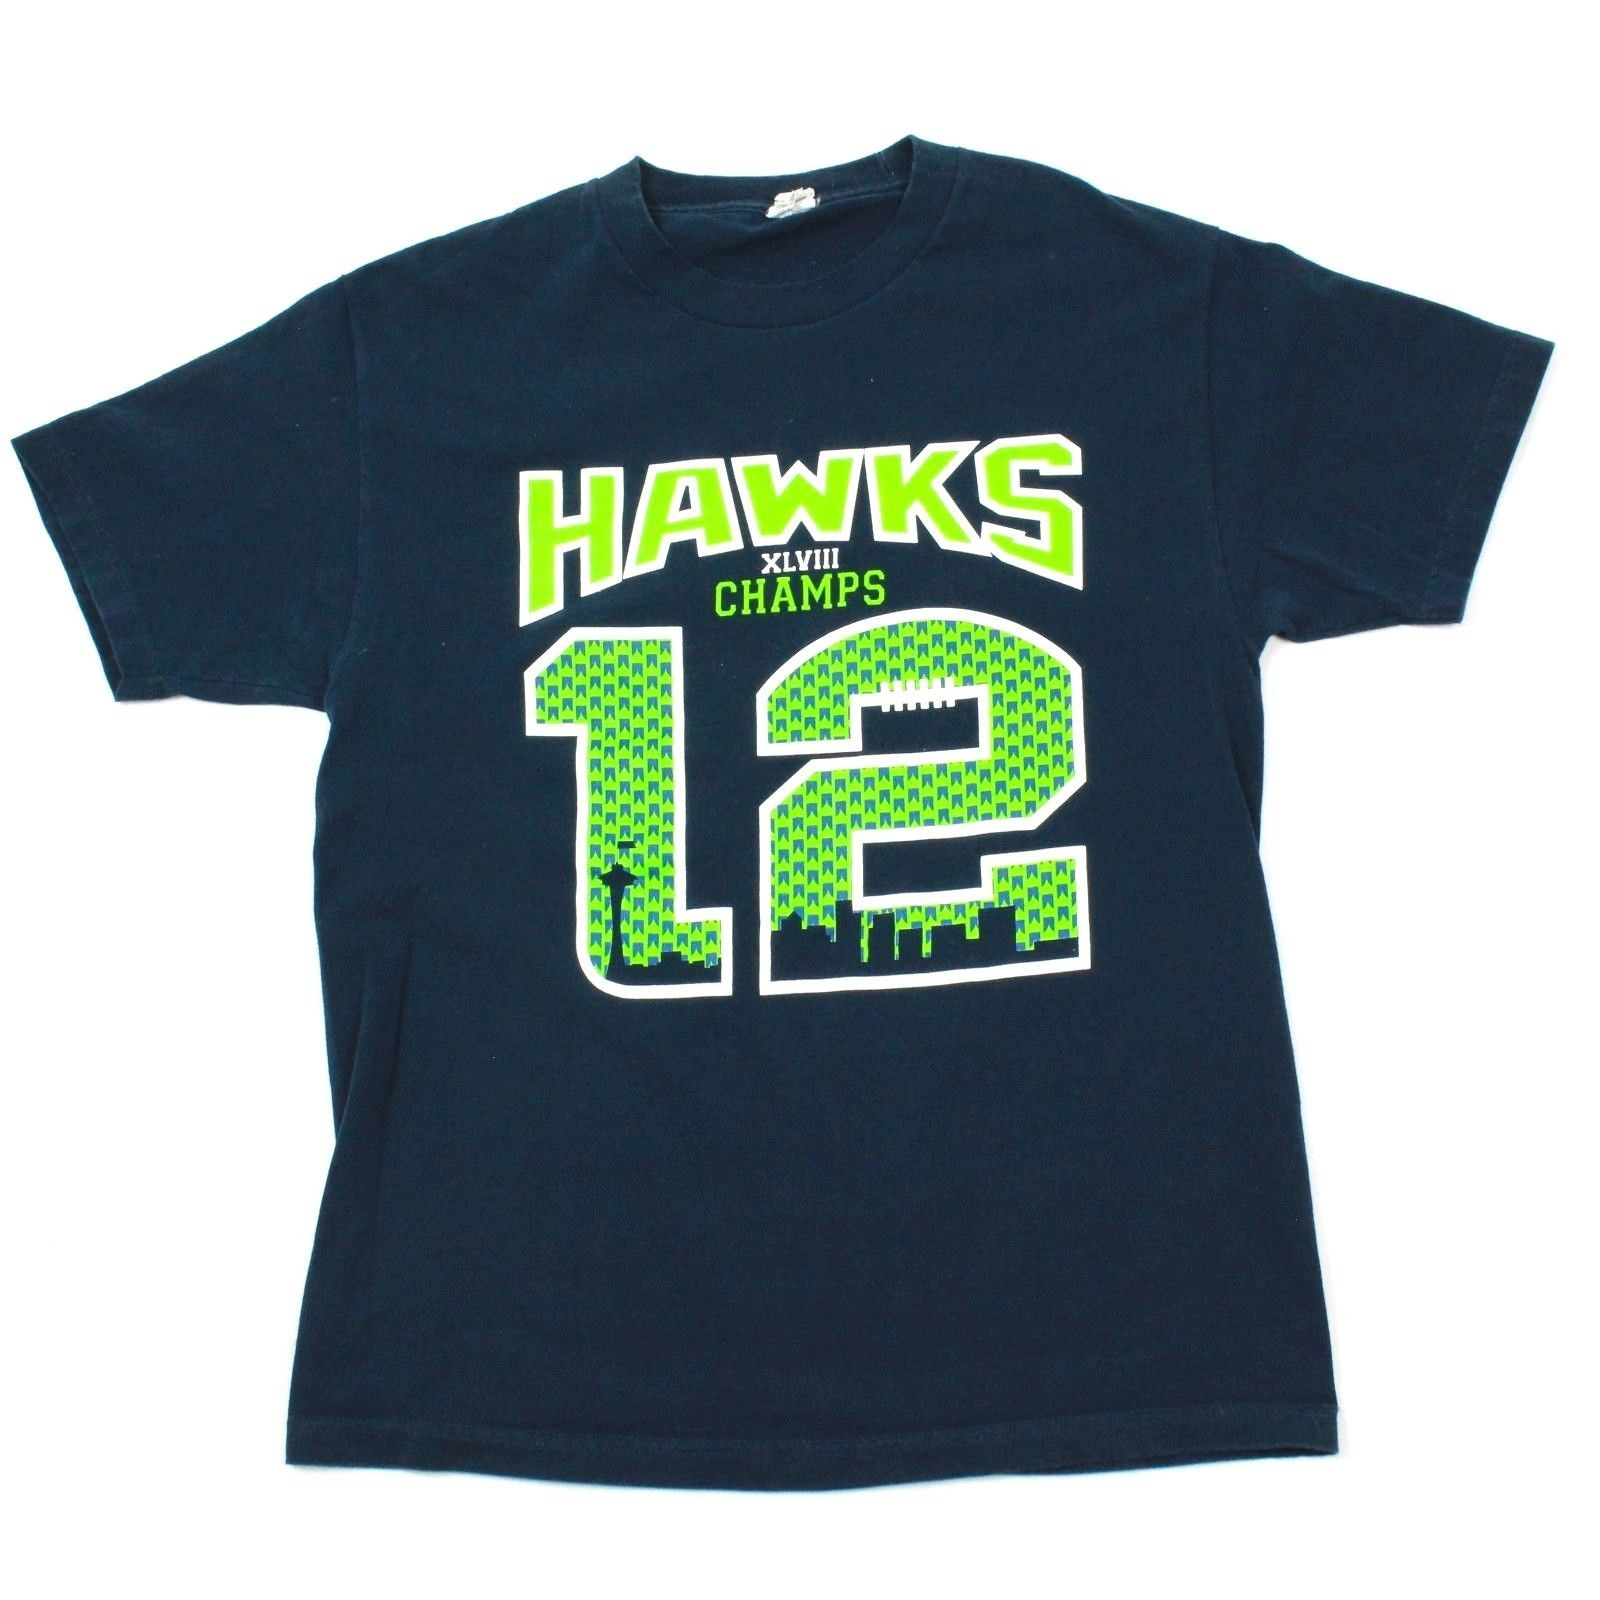 Seattle Seahawks Tshirt Retired ADKINS Number 12 retired Number The 12s Football